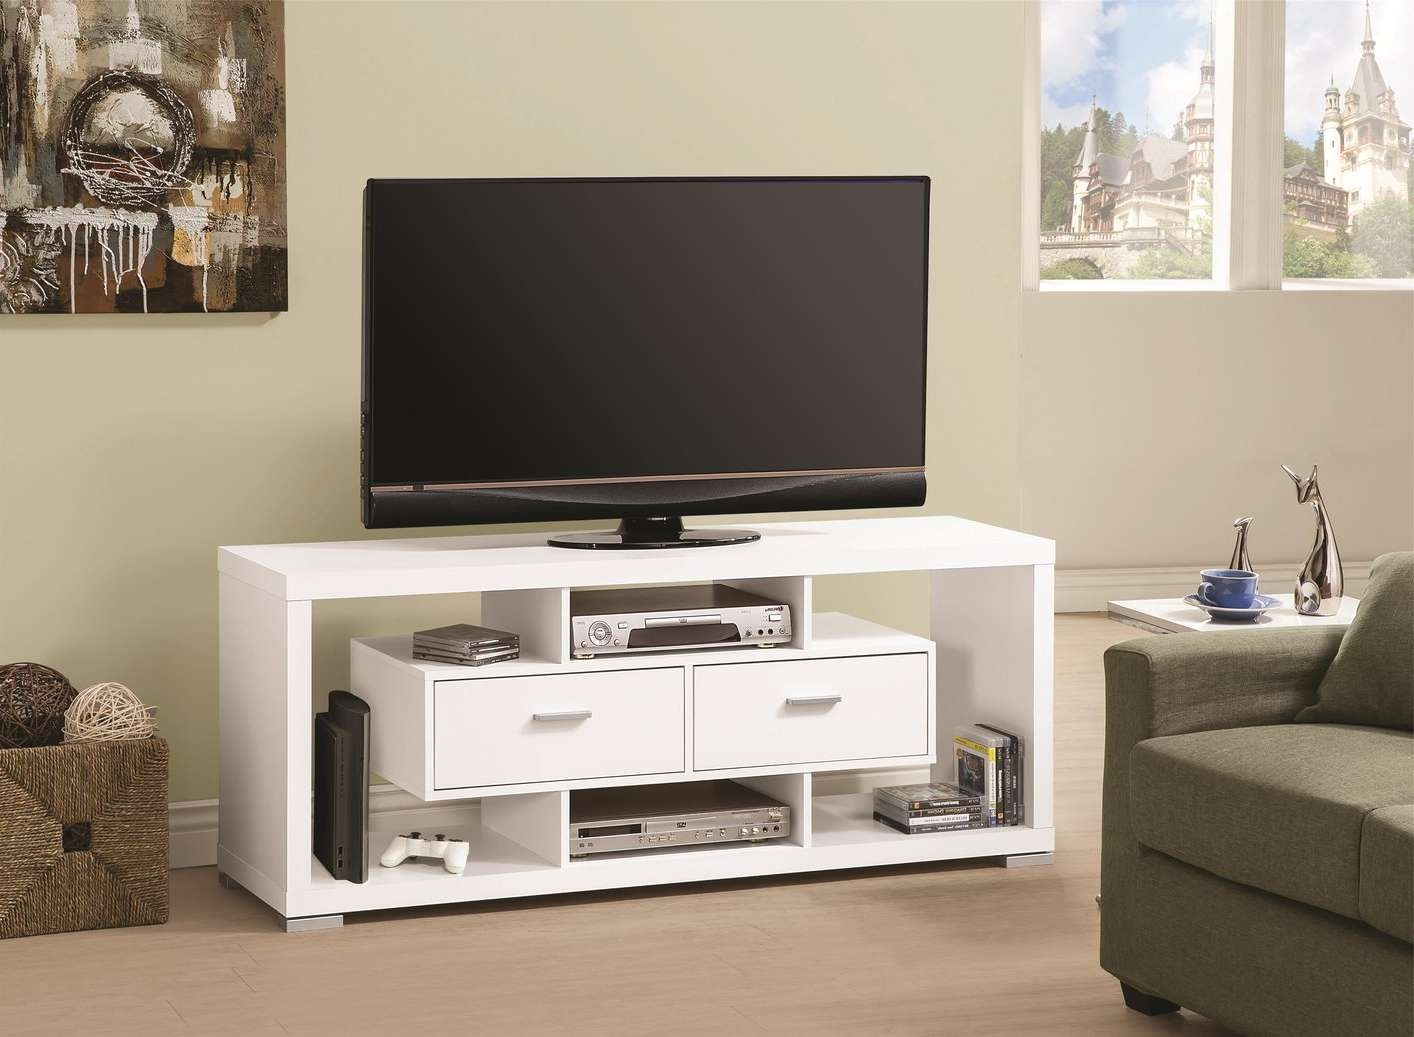 Long White Tv Cabinet | Izfurniture Inside White Wood Tv Cabinets (View 10 of 20)